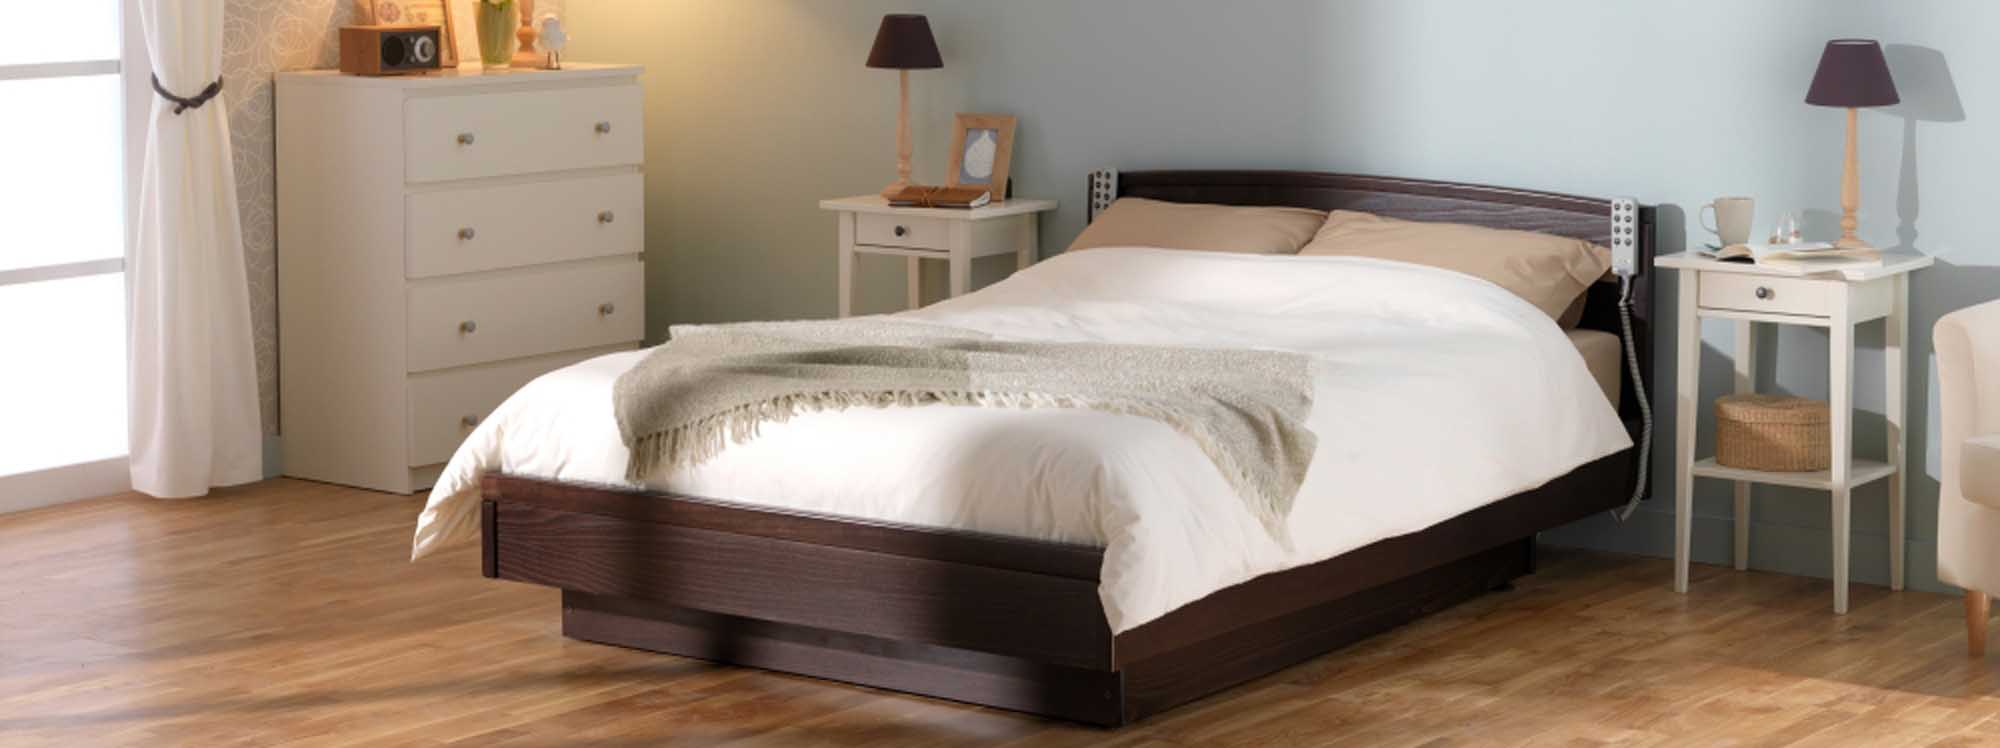 Countess profiling height adjustable double bed